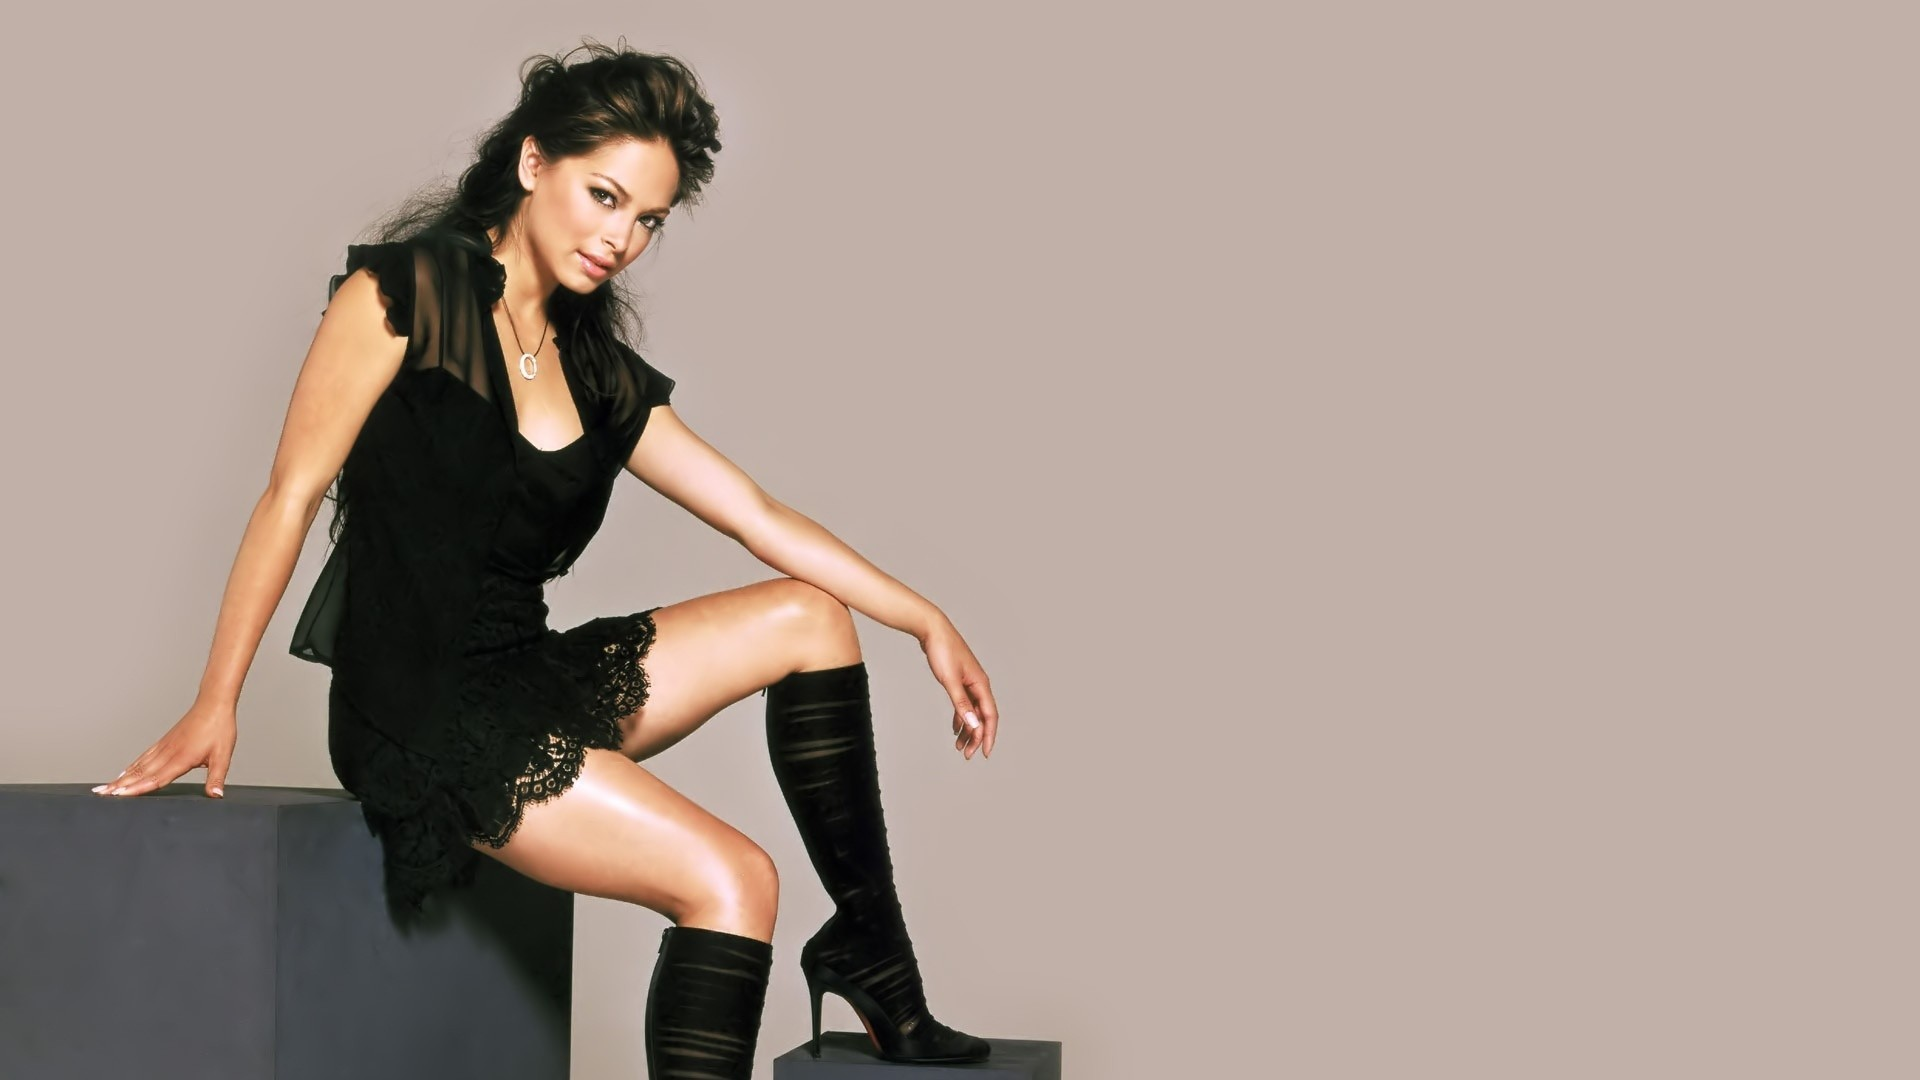 brunettes boots woman Kristin HD Wallpaper